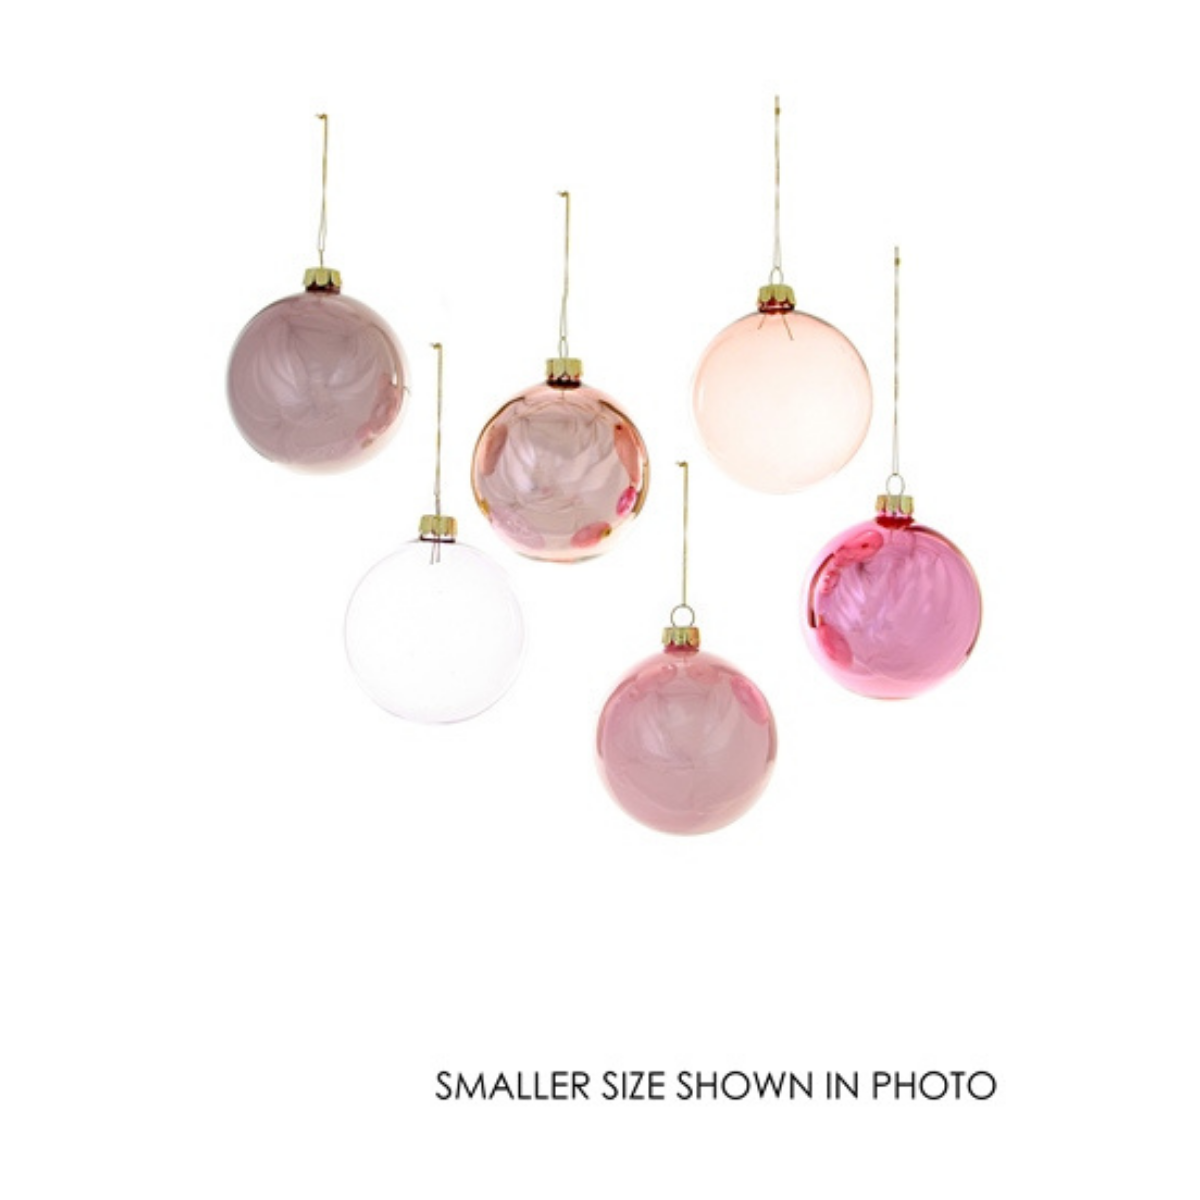 Giant Rose Hue Ornament Assortment - Set of 6